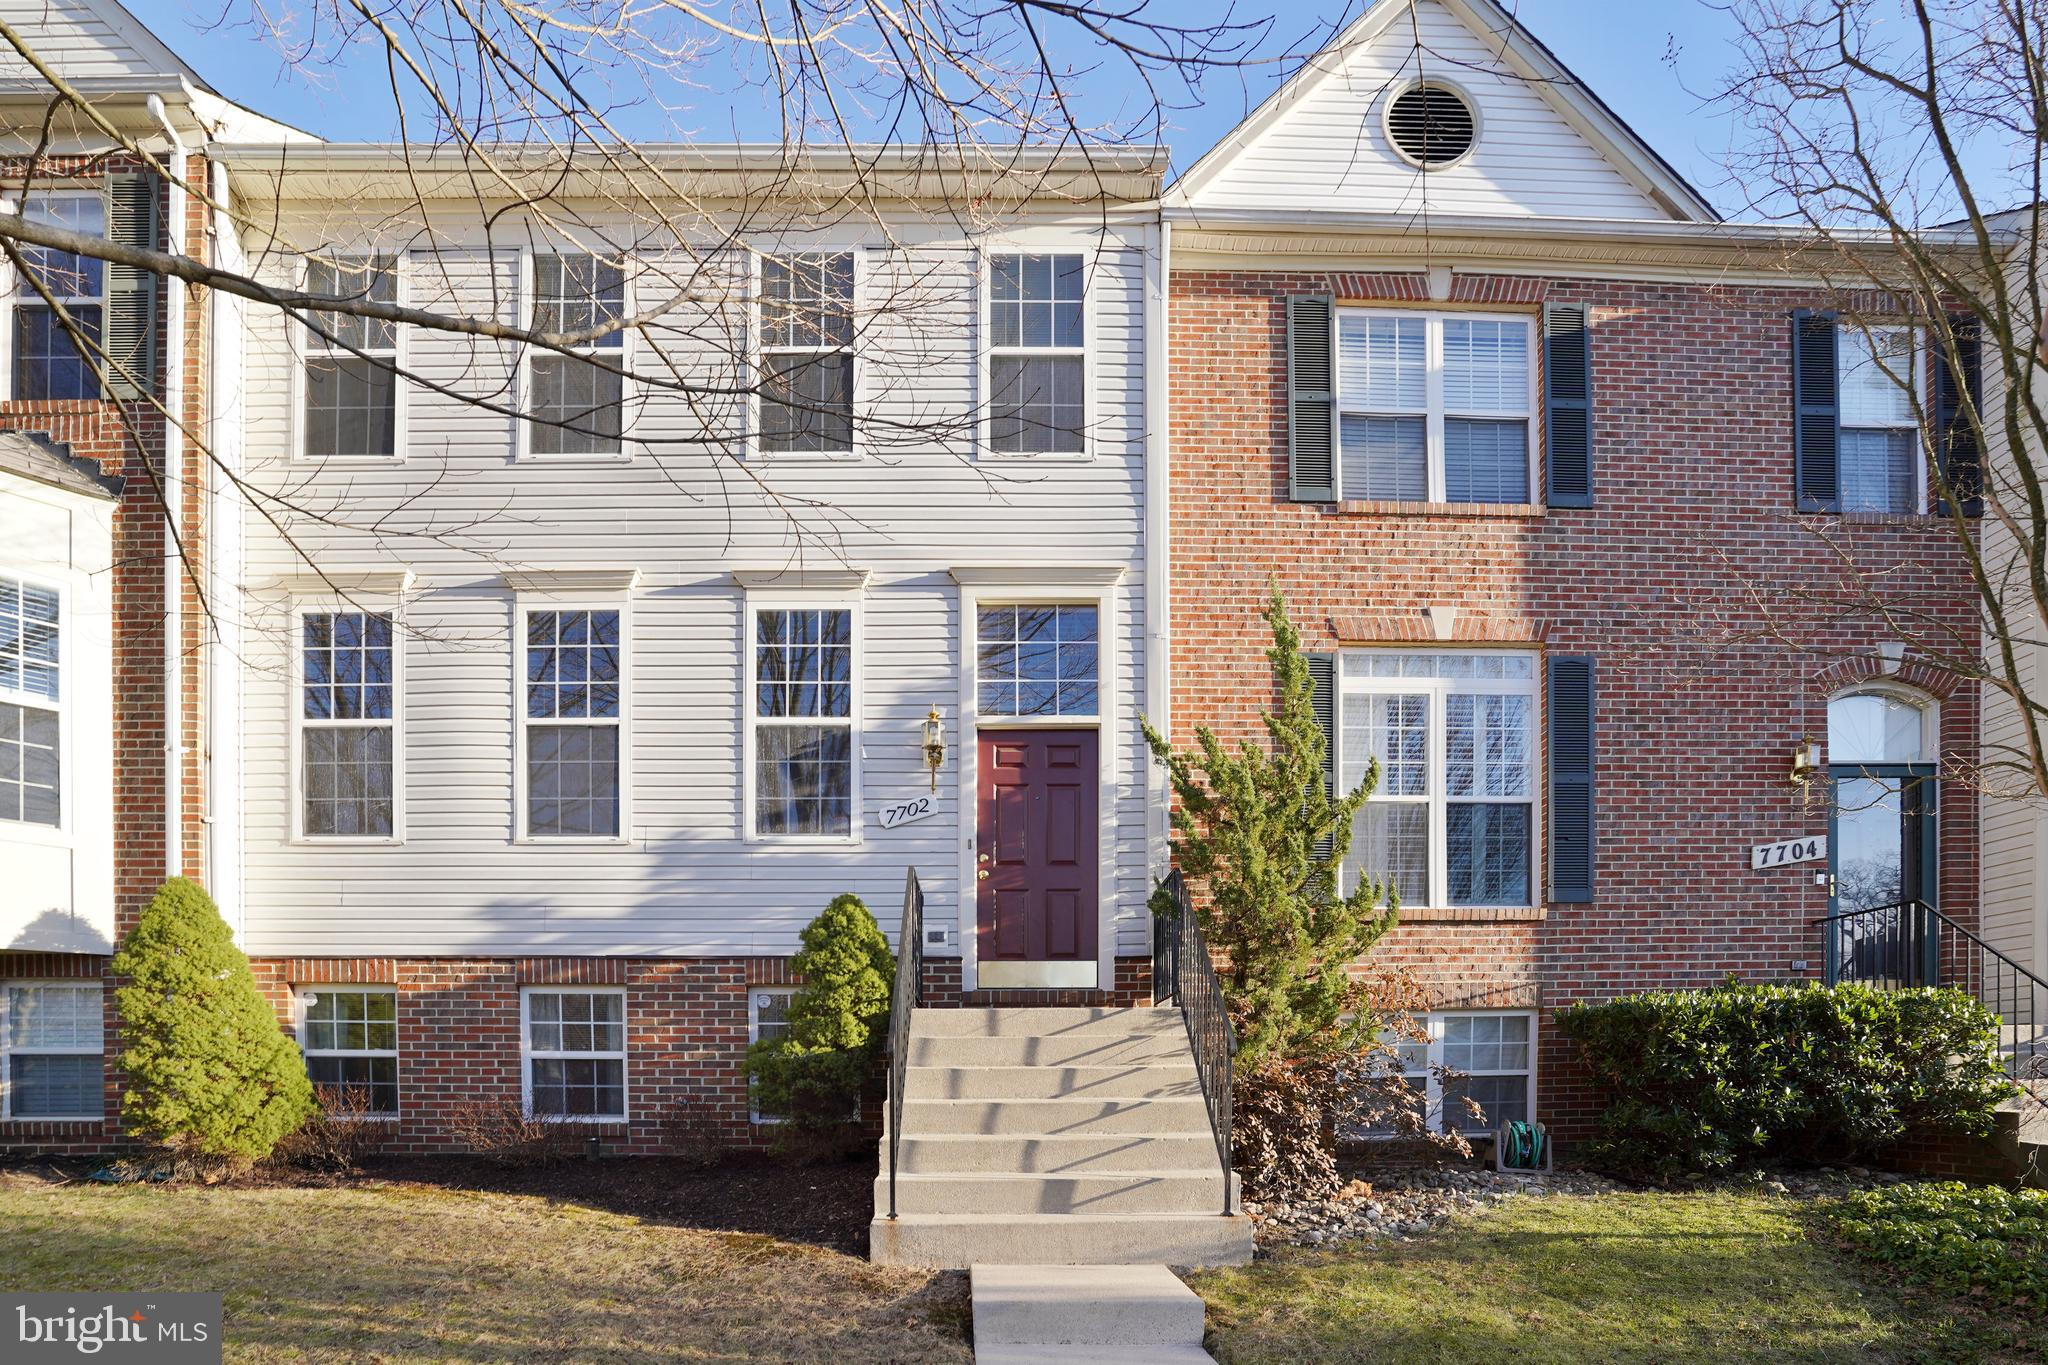 Absolutely amazing townhome with 4 bedrooms and 3 and one half baths located in sought after Ridgecr